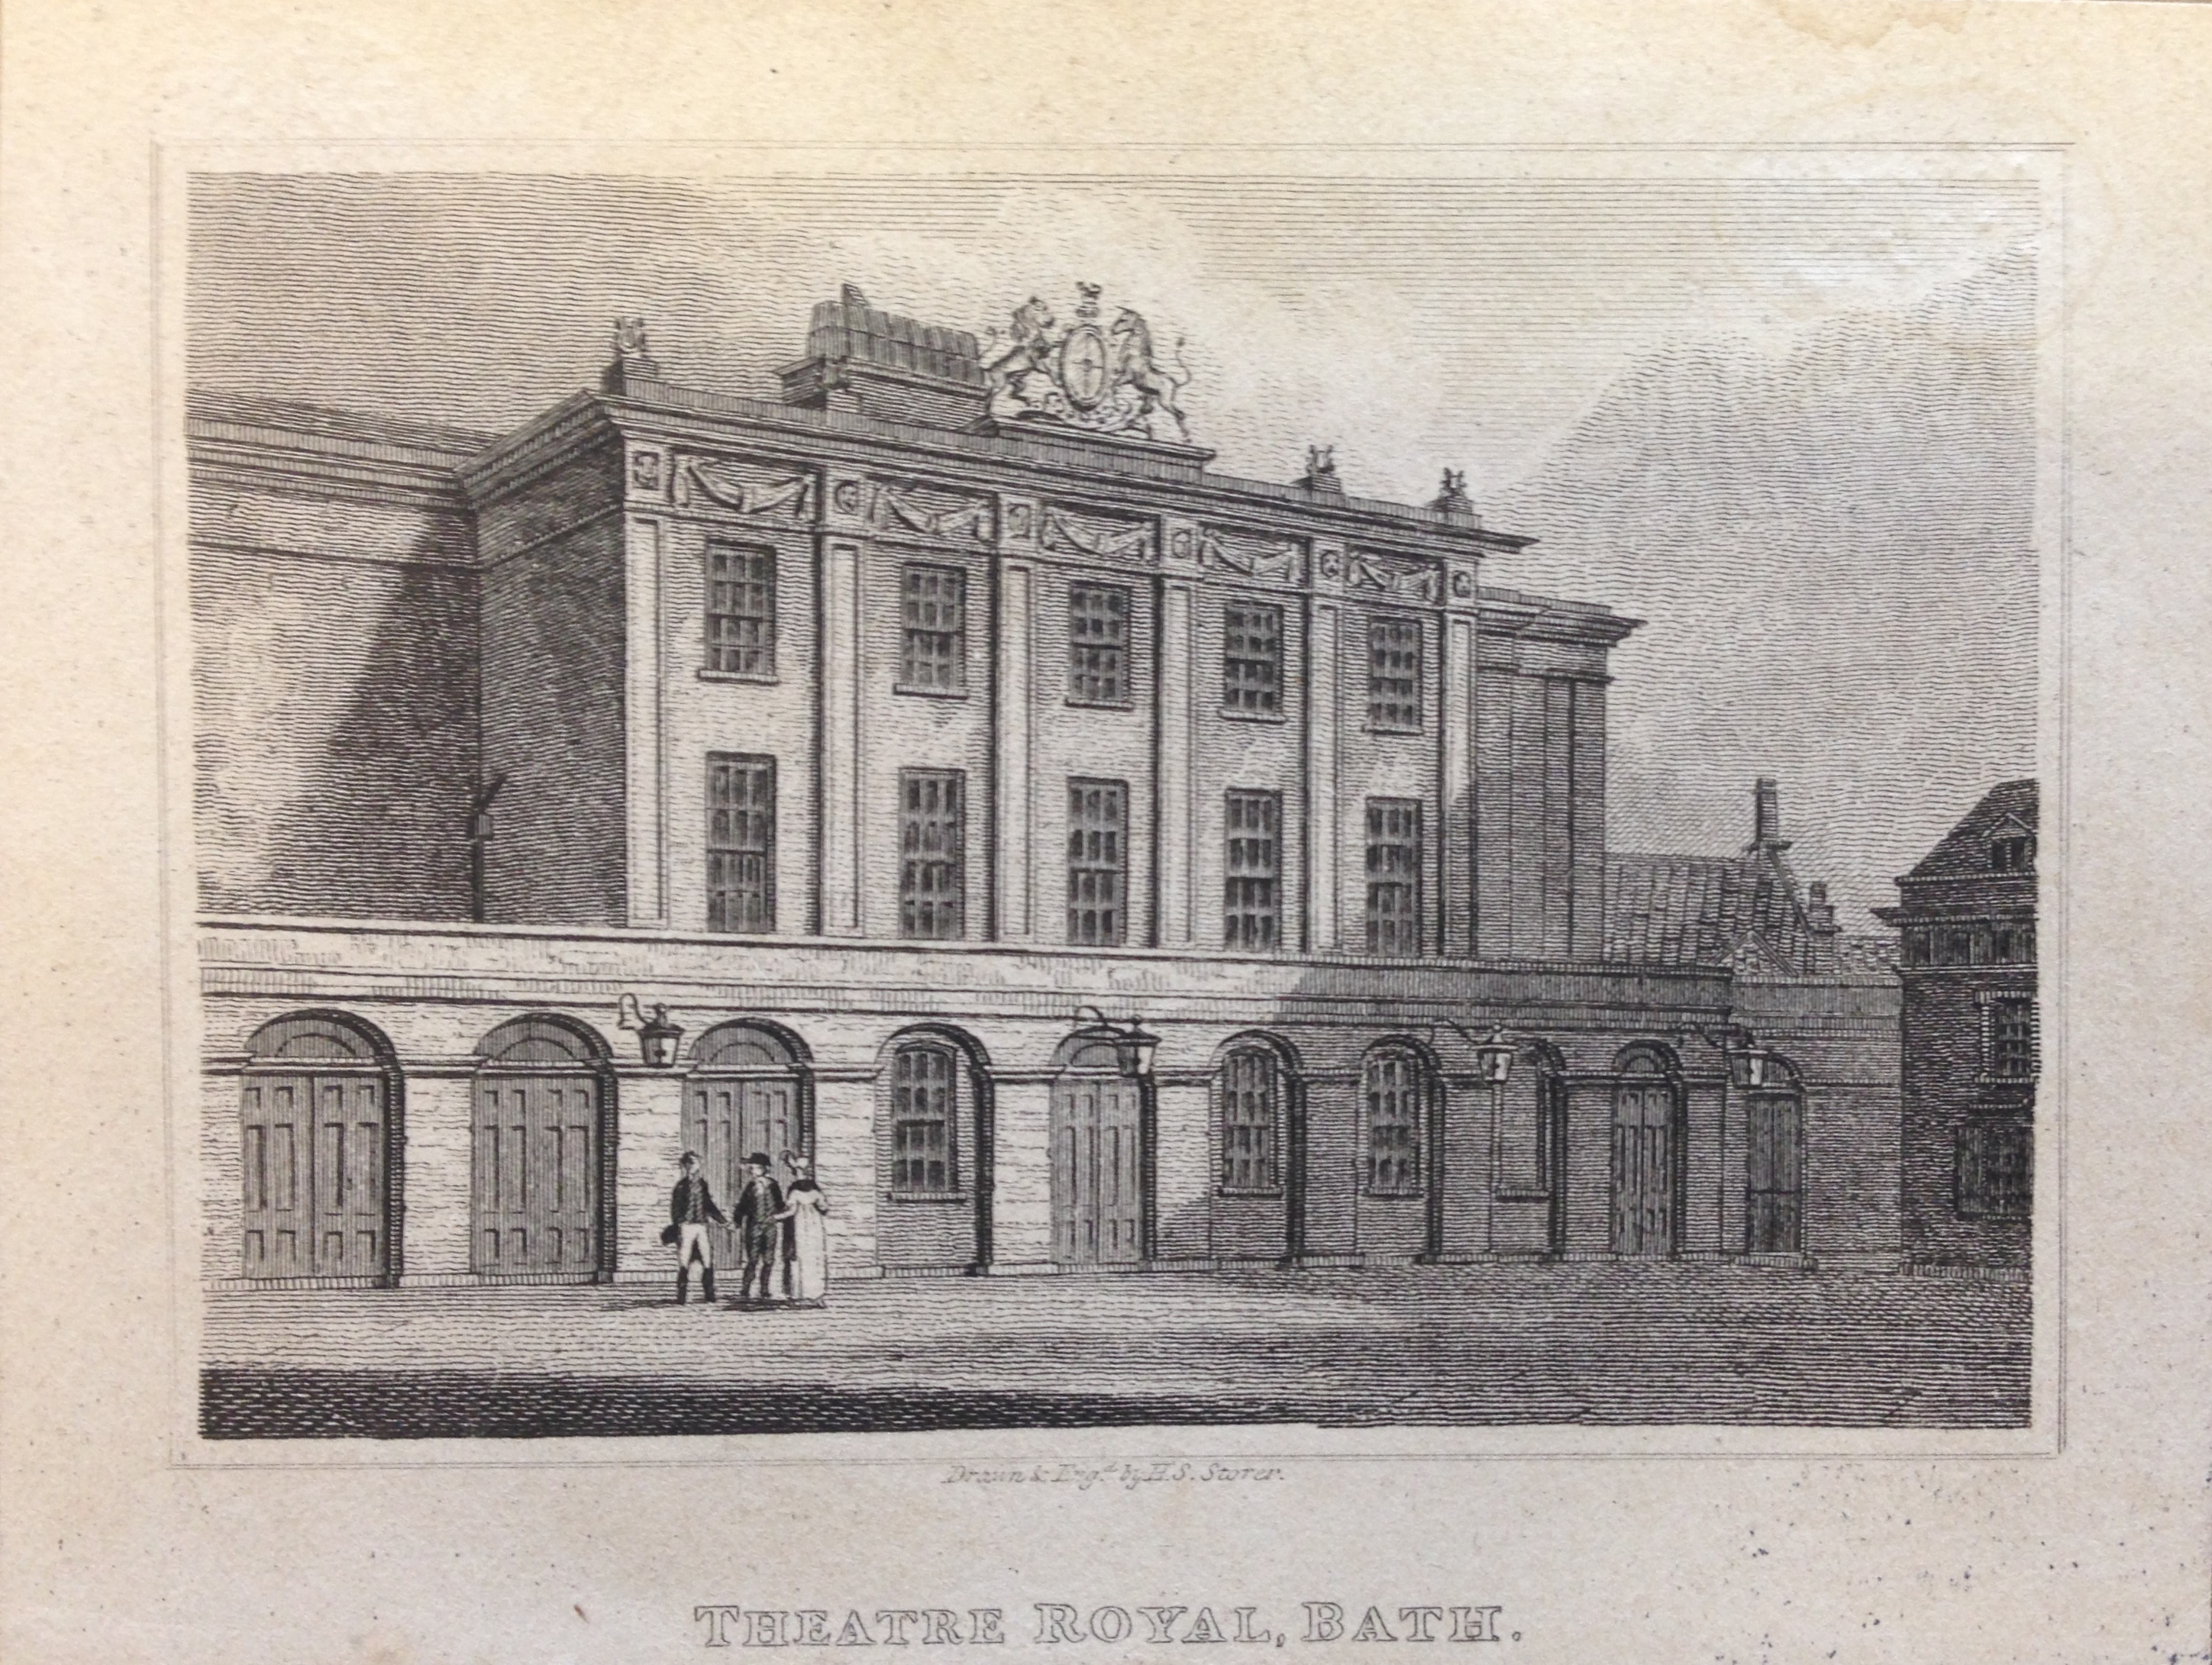 <b>Exterior of Theatre Royal, Bath</b>     	</br>Exterior of the Theatre Royal in Bath, c. 19th century.</br><br/><b>Source: </b><i>Used with permission from the University of Bristol Theatre Collection.</i>